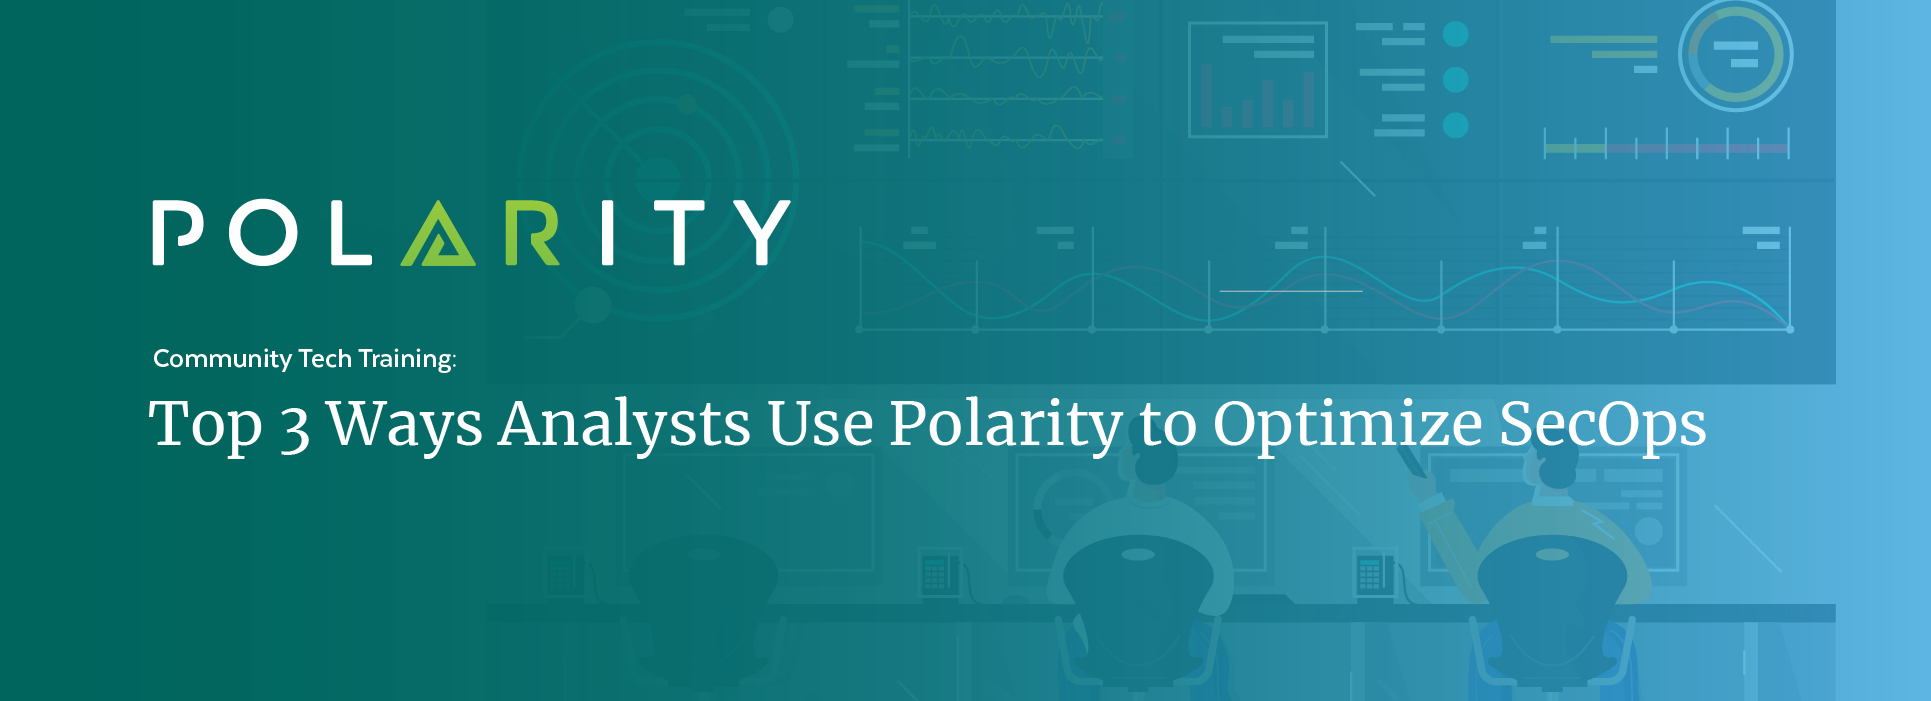 Top 3 Ways Analysts Use Polarity to Optimize SecOpscover image